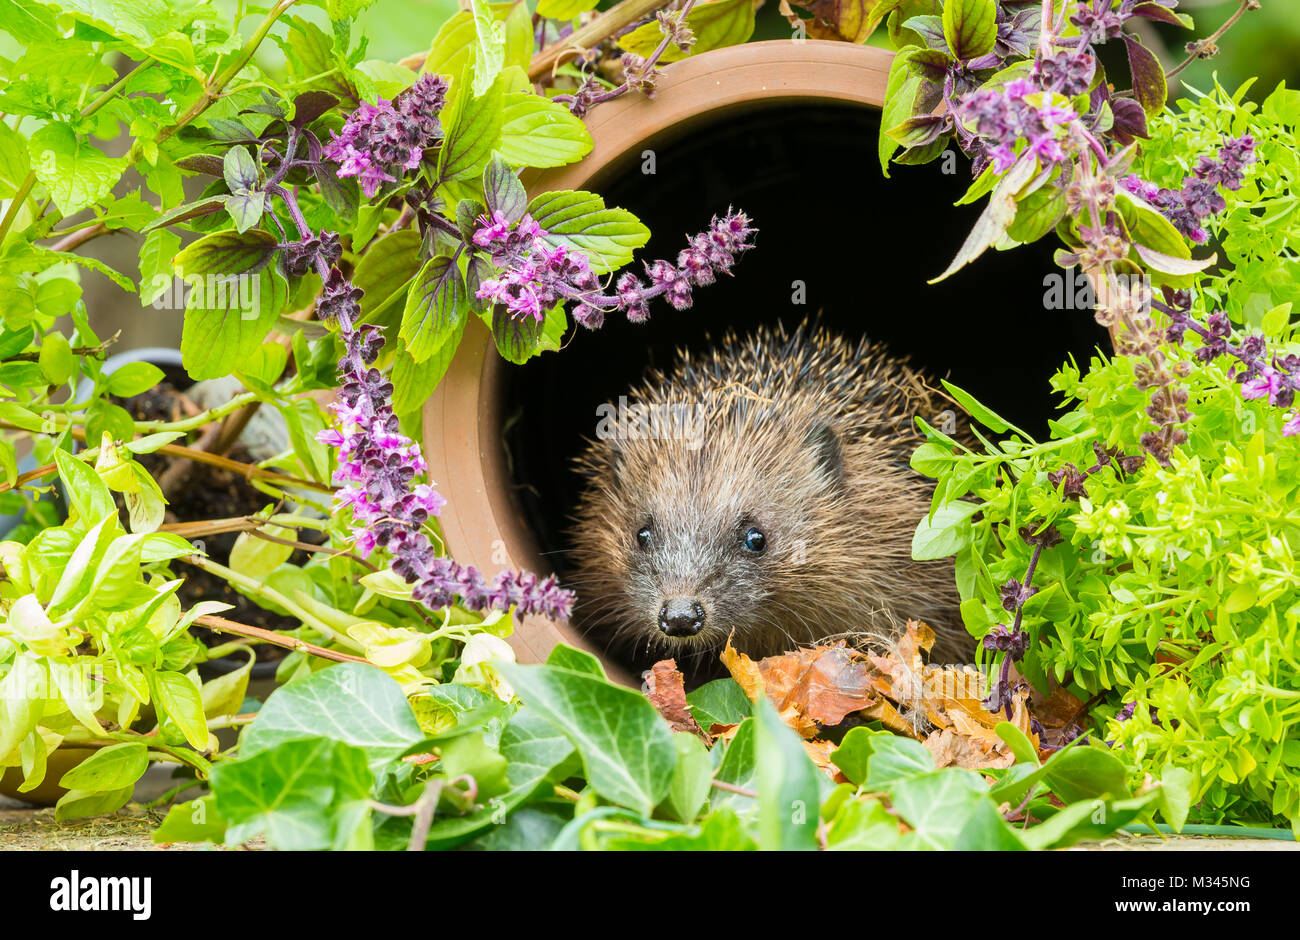 Hedgehog, native, wild hedgehog. Erinaceous Europaeus in terracotta pipe surrounded by garden herbs - Stock Image